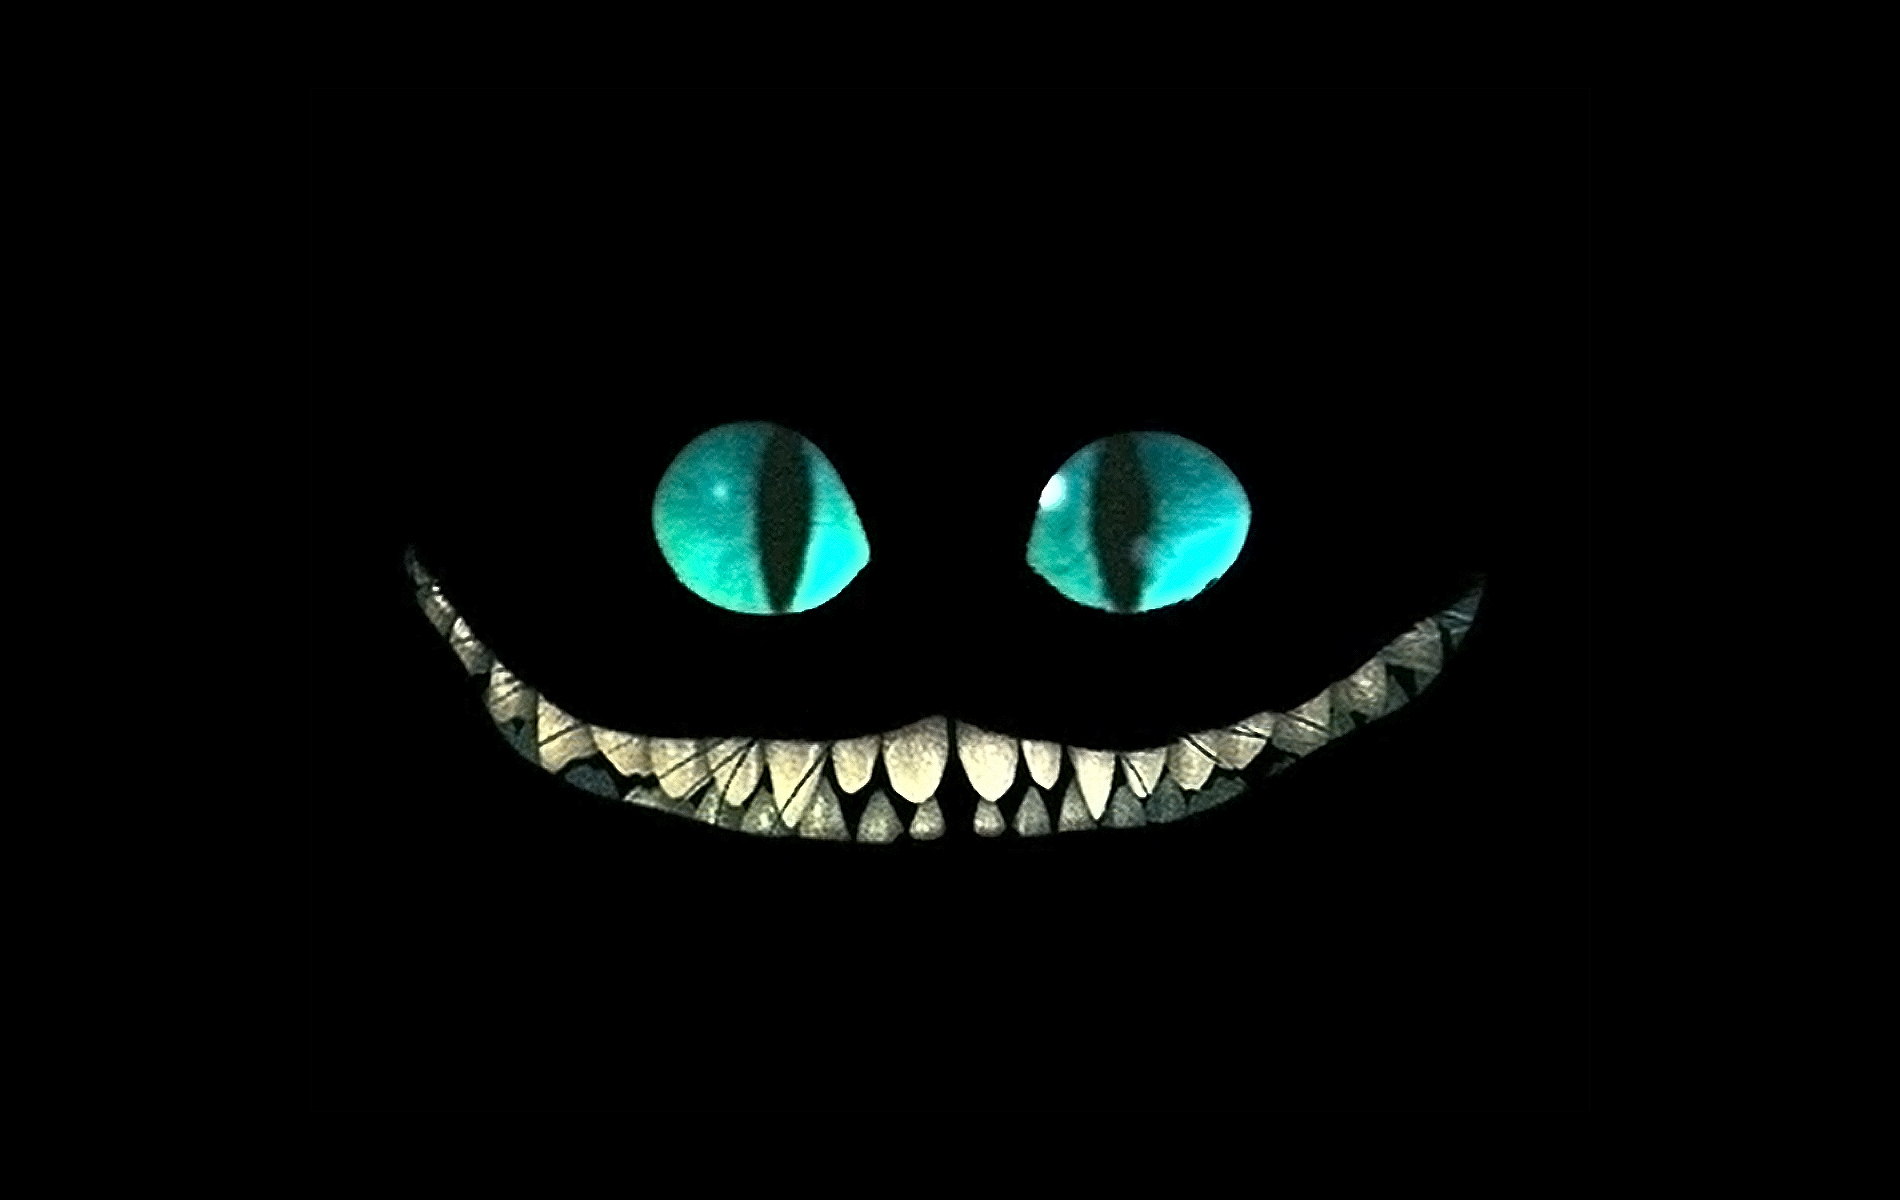 Download Cheshire Cat Wallpaper 1900x1200 Wallpoper 424715 1900x1200